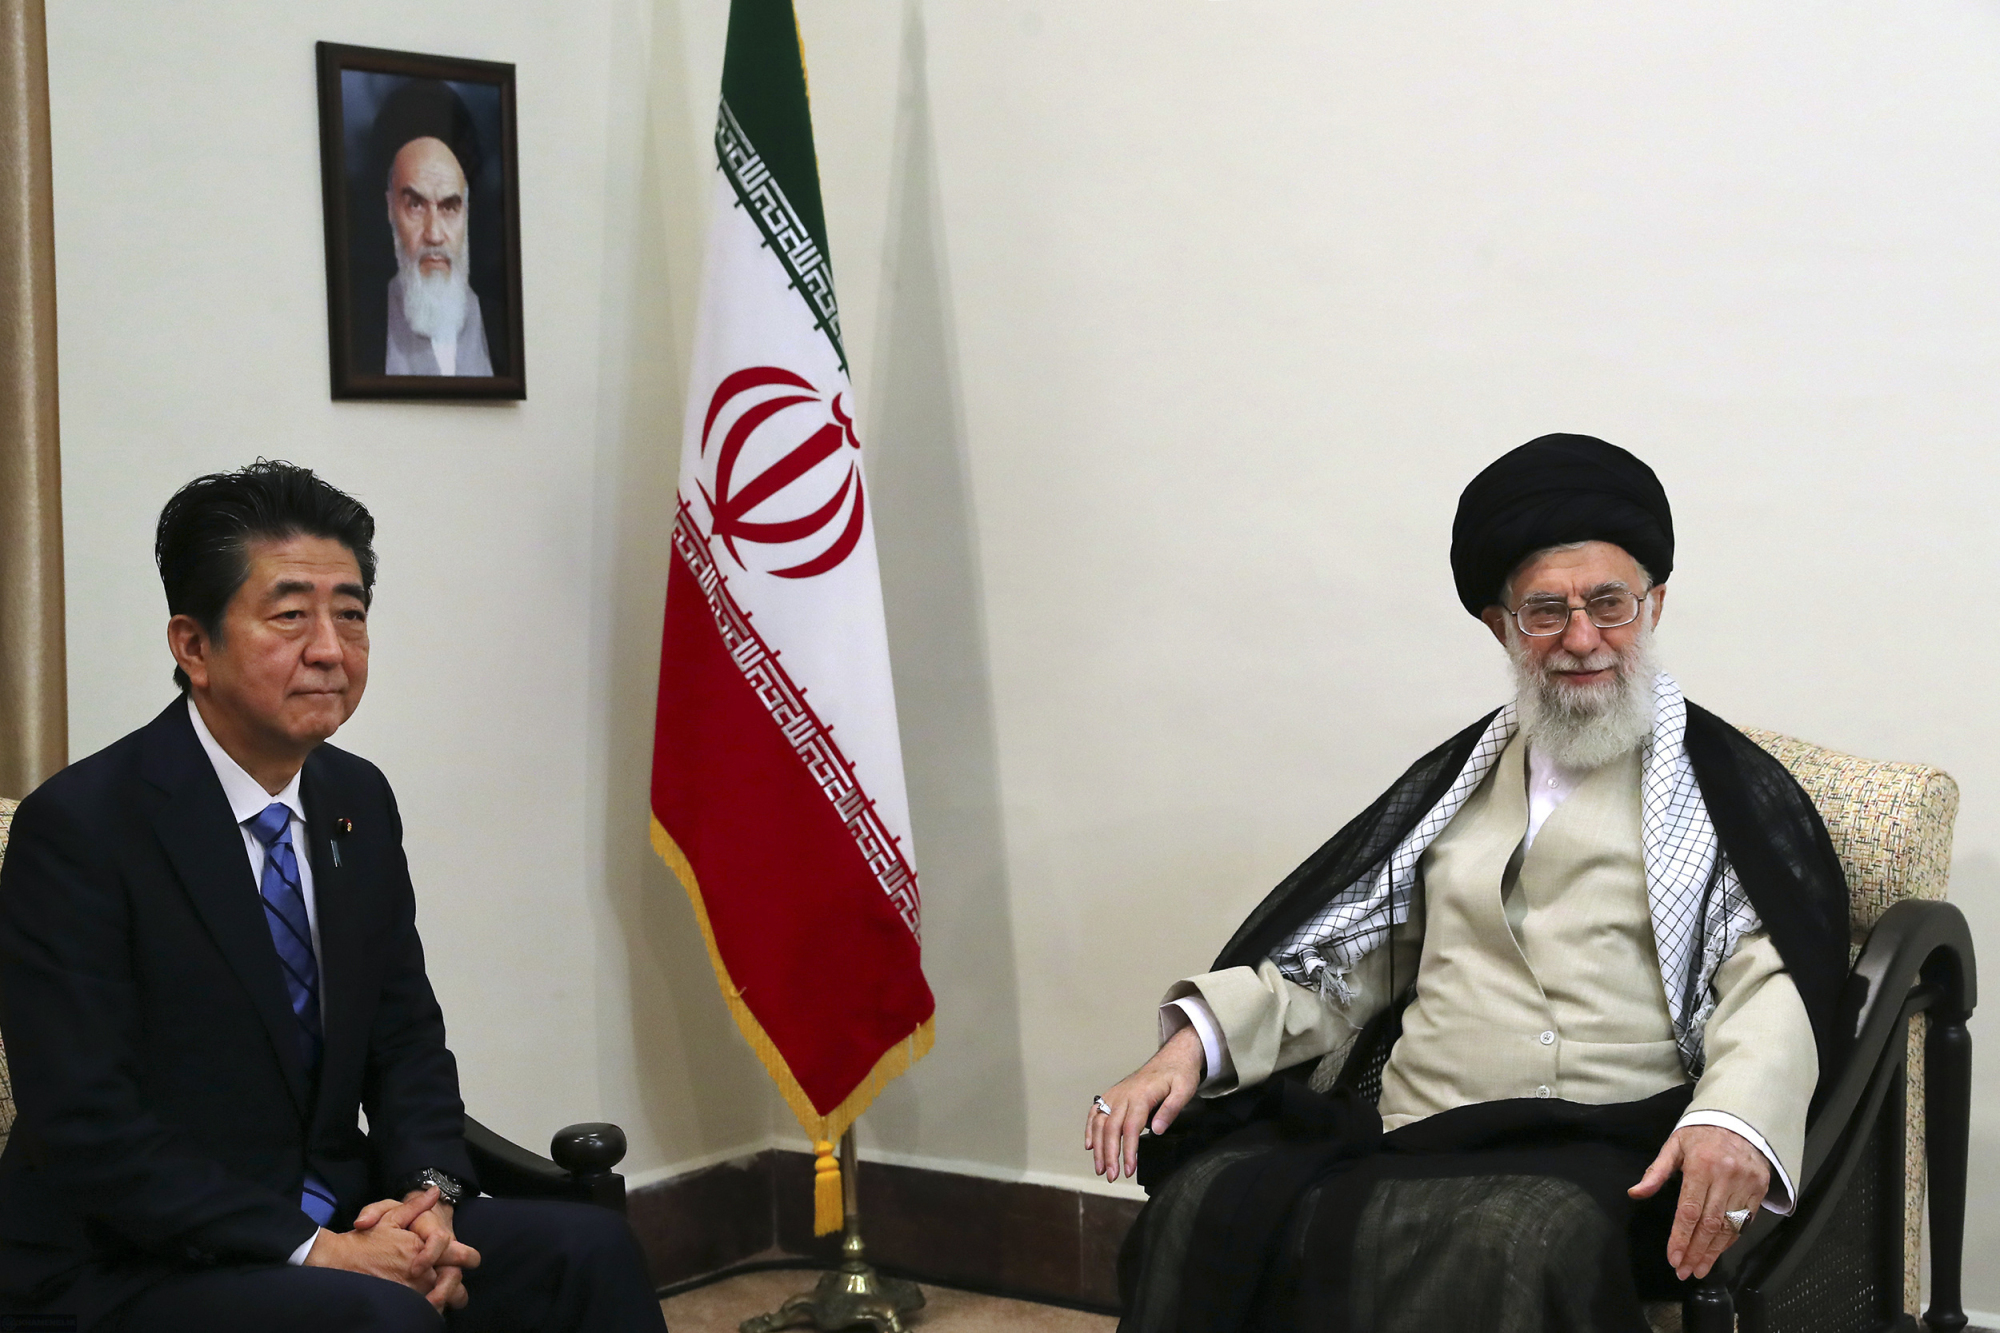 Prime Minister Shinzo Abe meets with Ayatollah Ali Khamenei, Iran's supreme leader, in Tehran on Thursday. A portrait of the late Iranian revolutionary founder, Ayatollah Khomeini, hangs on the wall. | AP